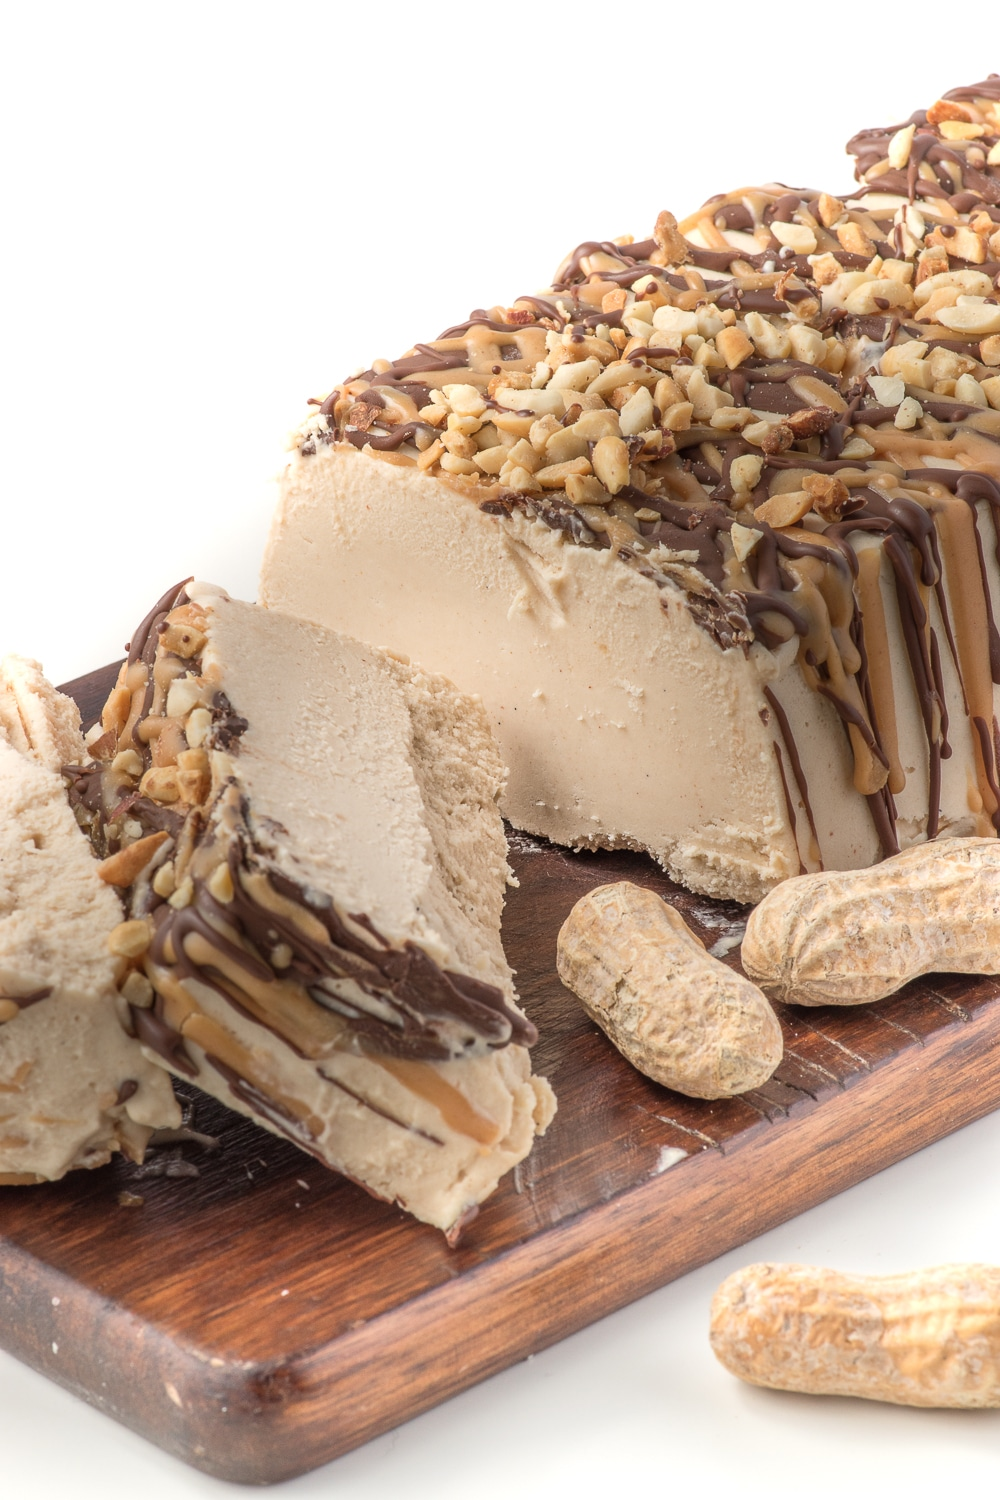 a loaf shaped peanut butter ice cream cake sliced on a cutting board